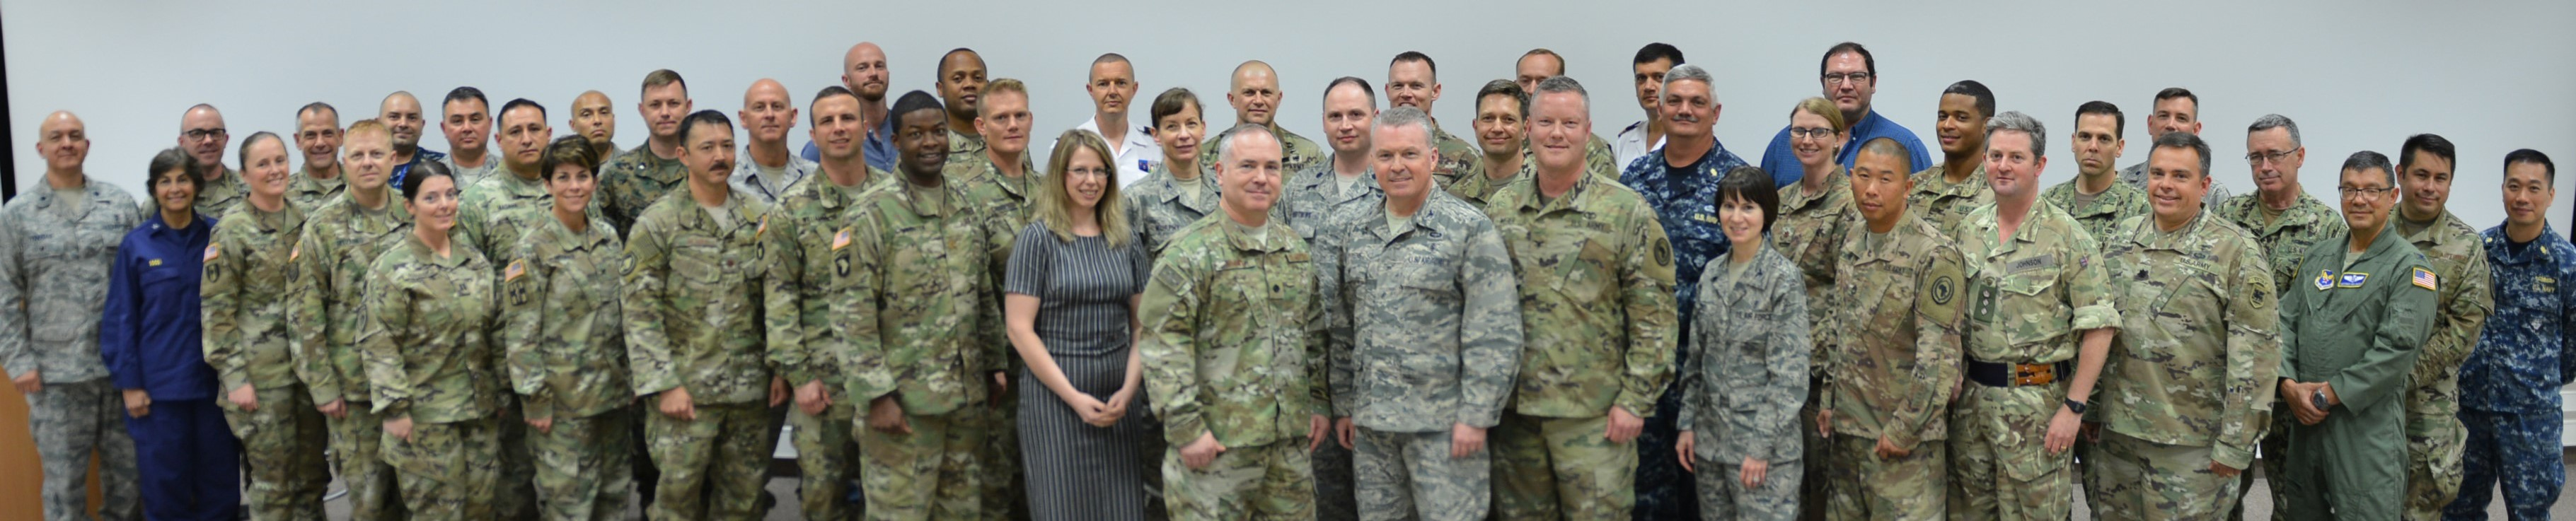 STUTTGART, Germany – U.S. Africa Command hosted an annual Command Surgeon Synchronization Conference, May 22-24, 2018, at the Kelly Special Events Center. Led by the AFRICOM Command surgeon's office  the purpose was to bring medical professionals from across the command, and interagency and foreign partners, to discuss challenges and concerns within the medical enterprise in Africa. (Photo by Army Staff Sgt. Grady Jones, U.S. Africa Command Public Affairs)